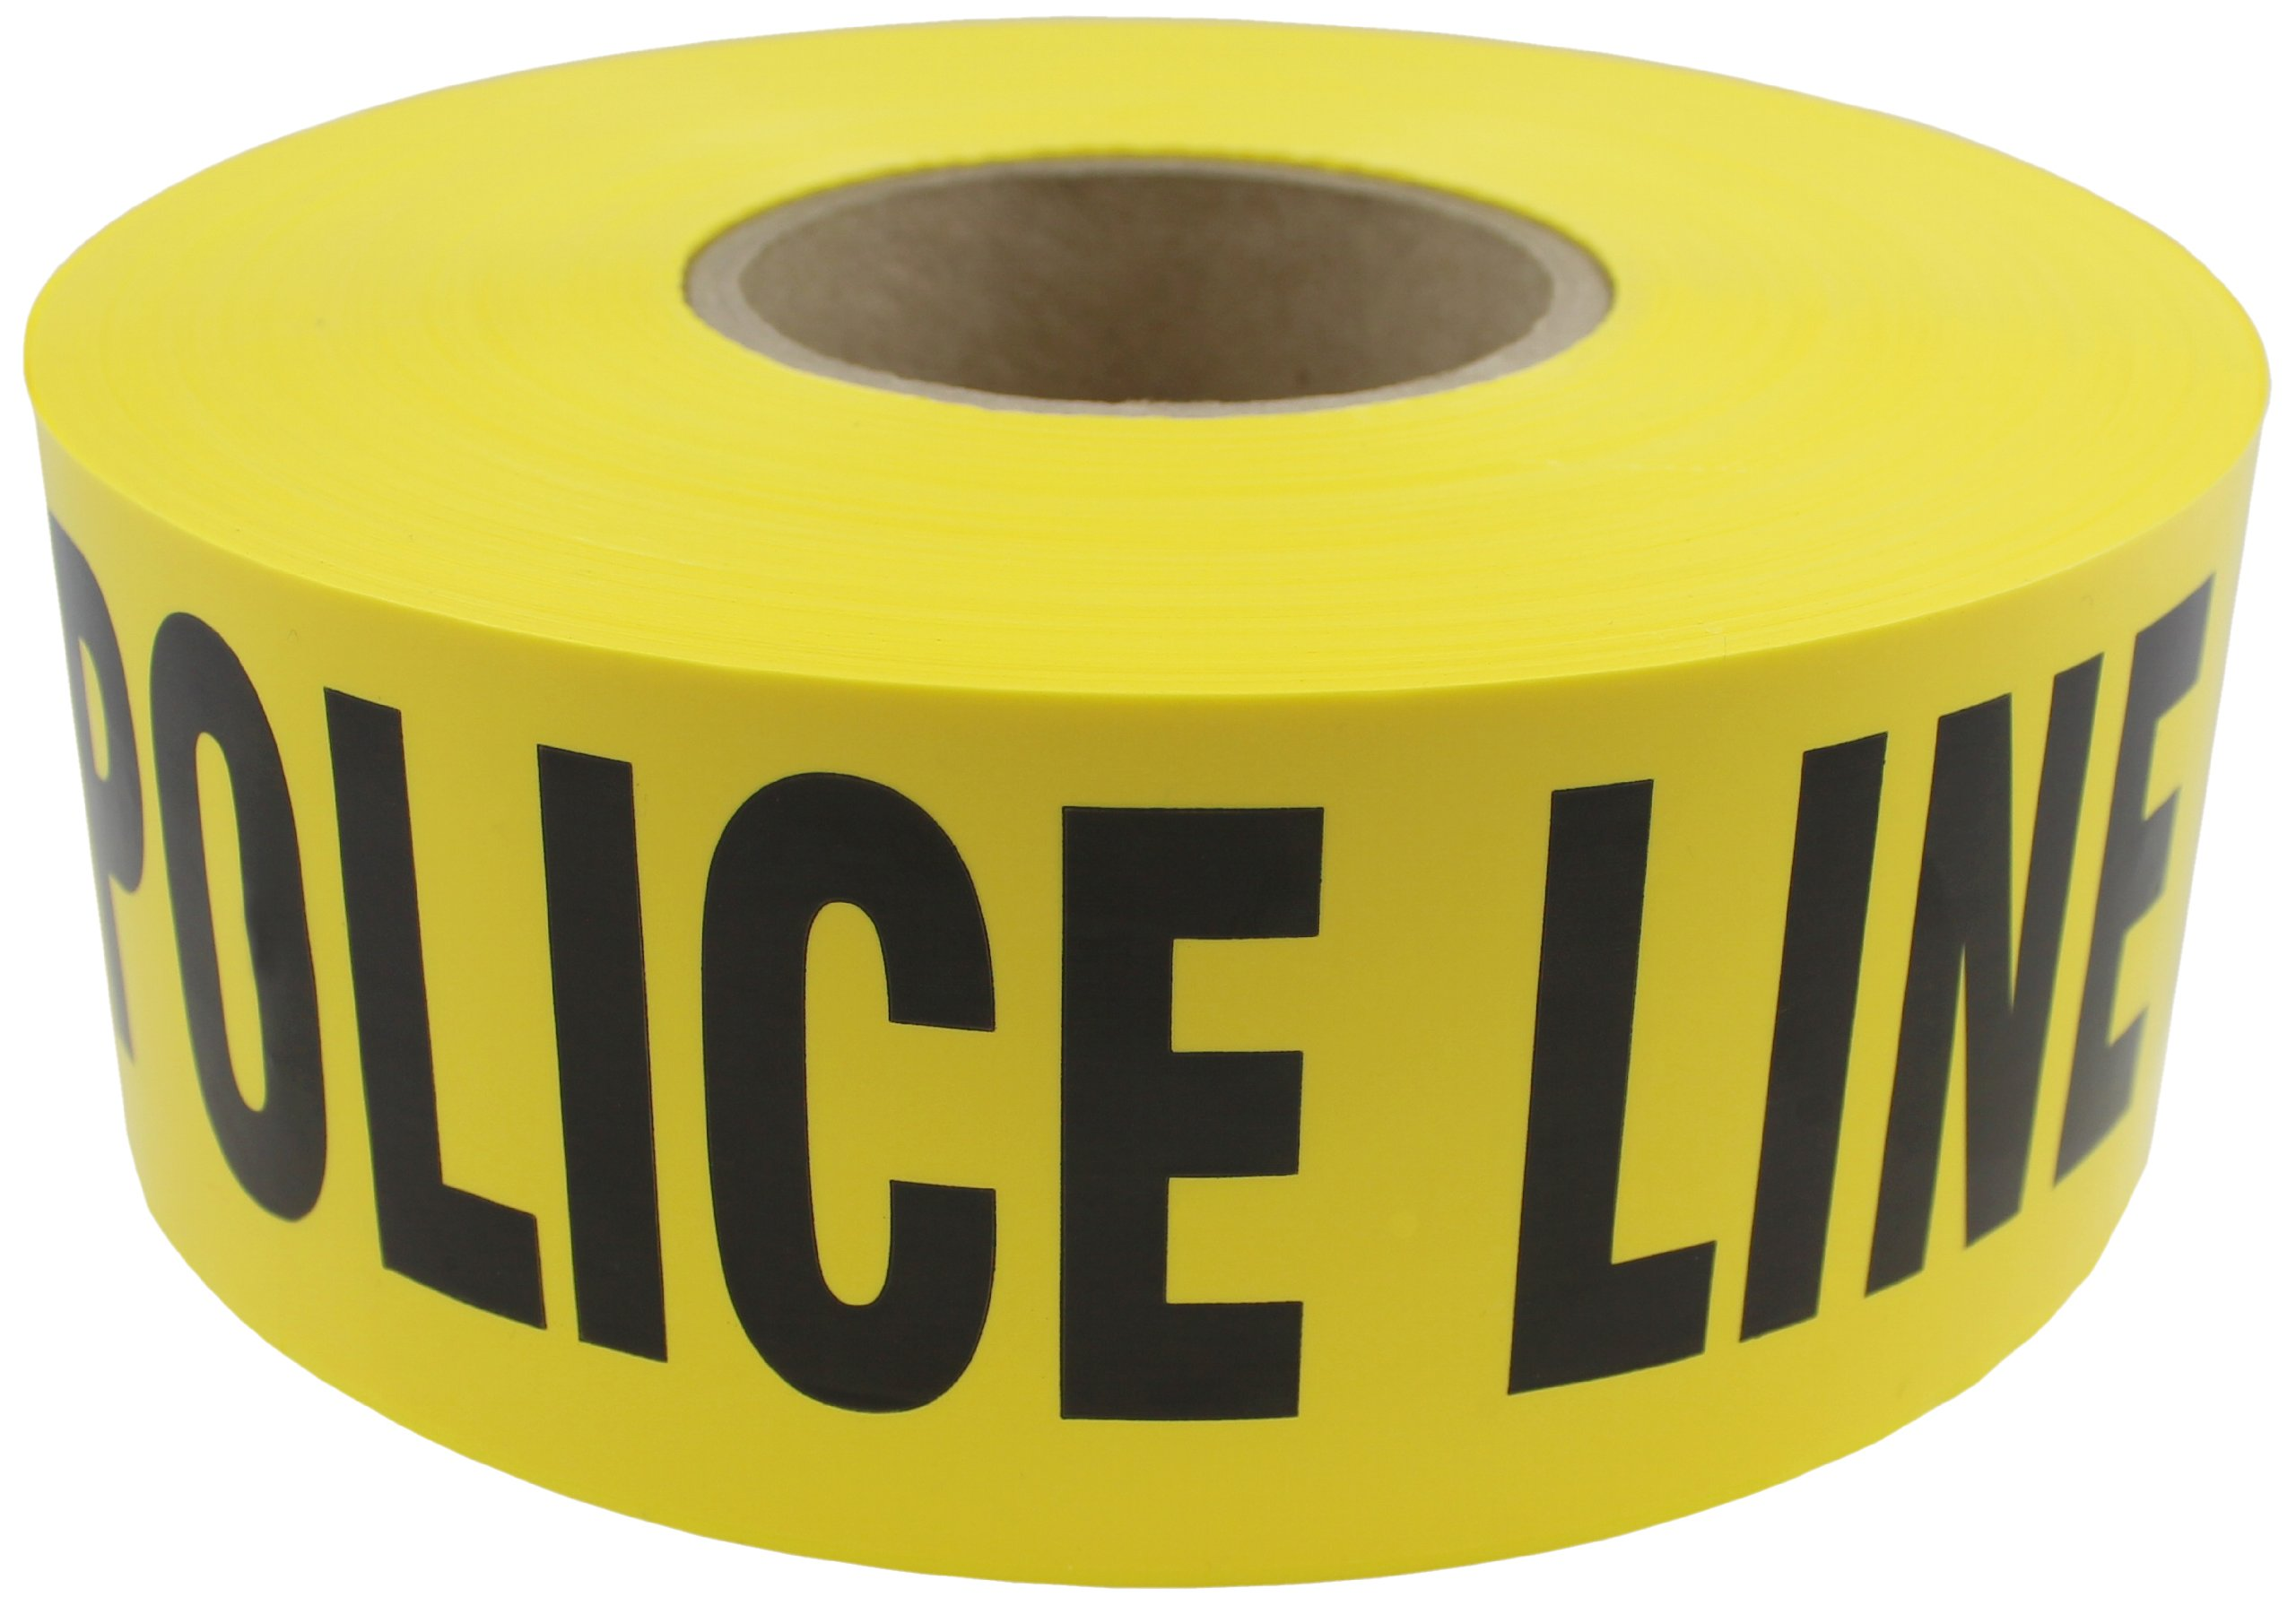 Presco B3102Y11-658 1000' Length x 3'' Width x 2 mil Thick, Polyethylene, Yellow with Black Ink Barricade Tape, Legend ''Police Line Do Not Cross'' (Pack of 8)